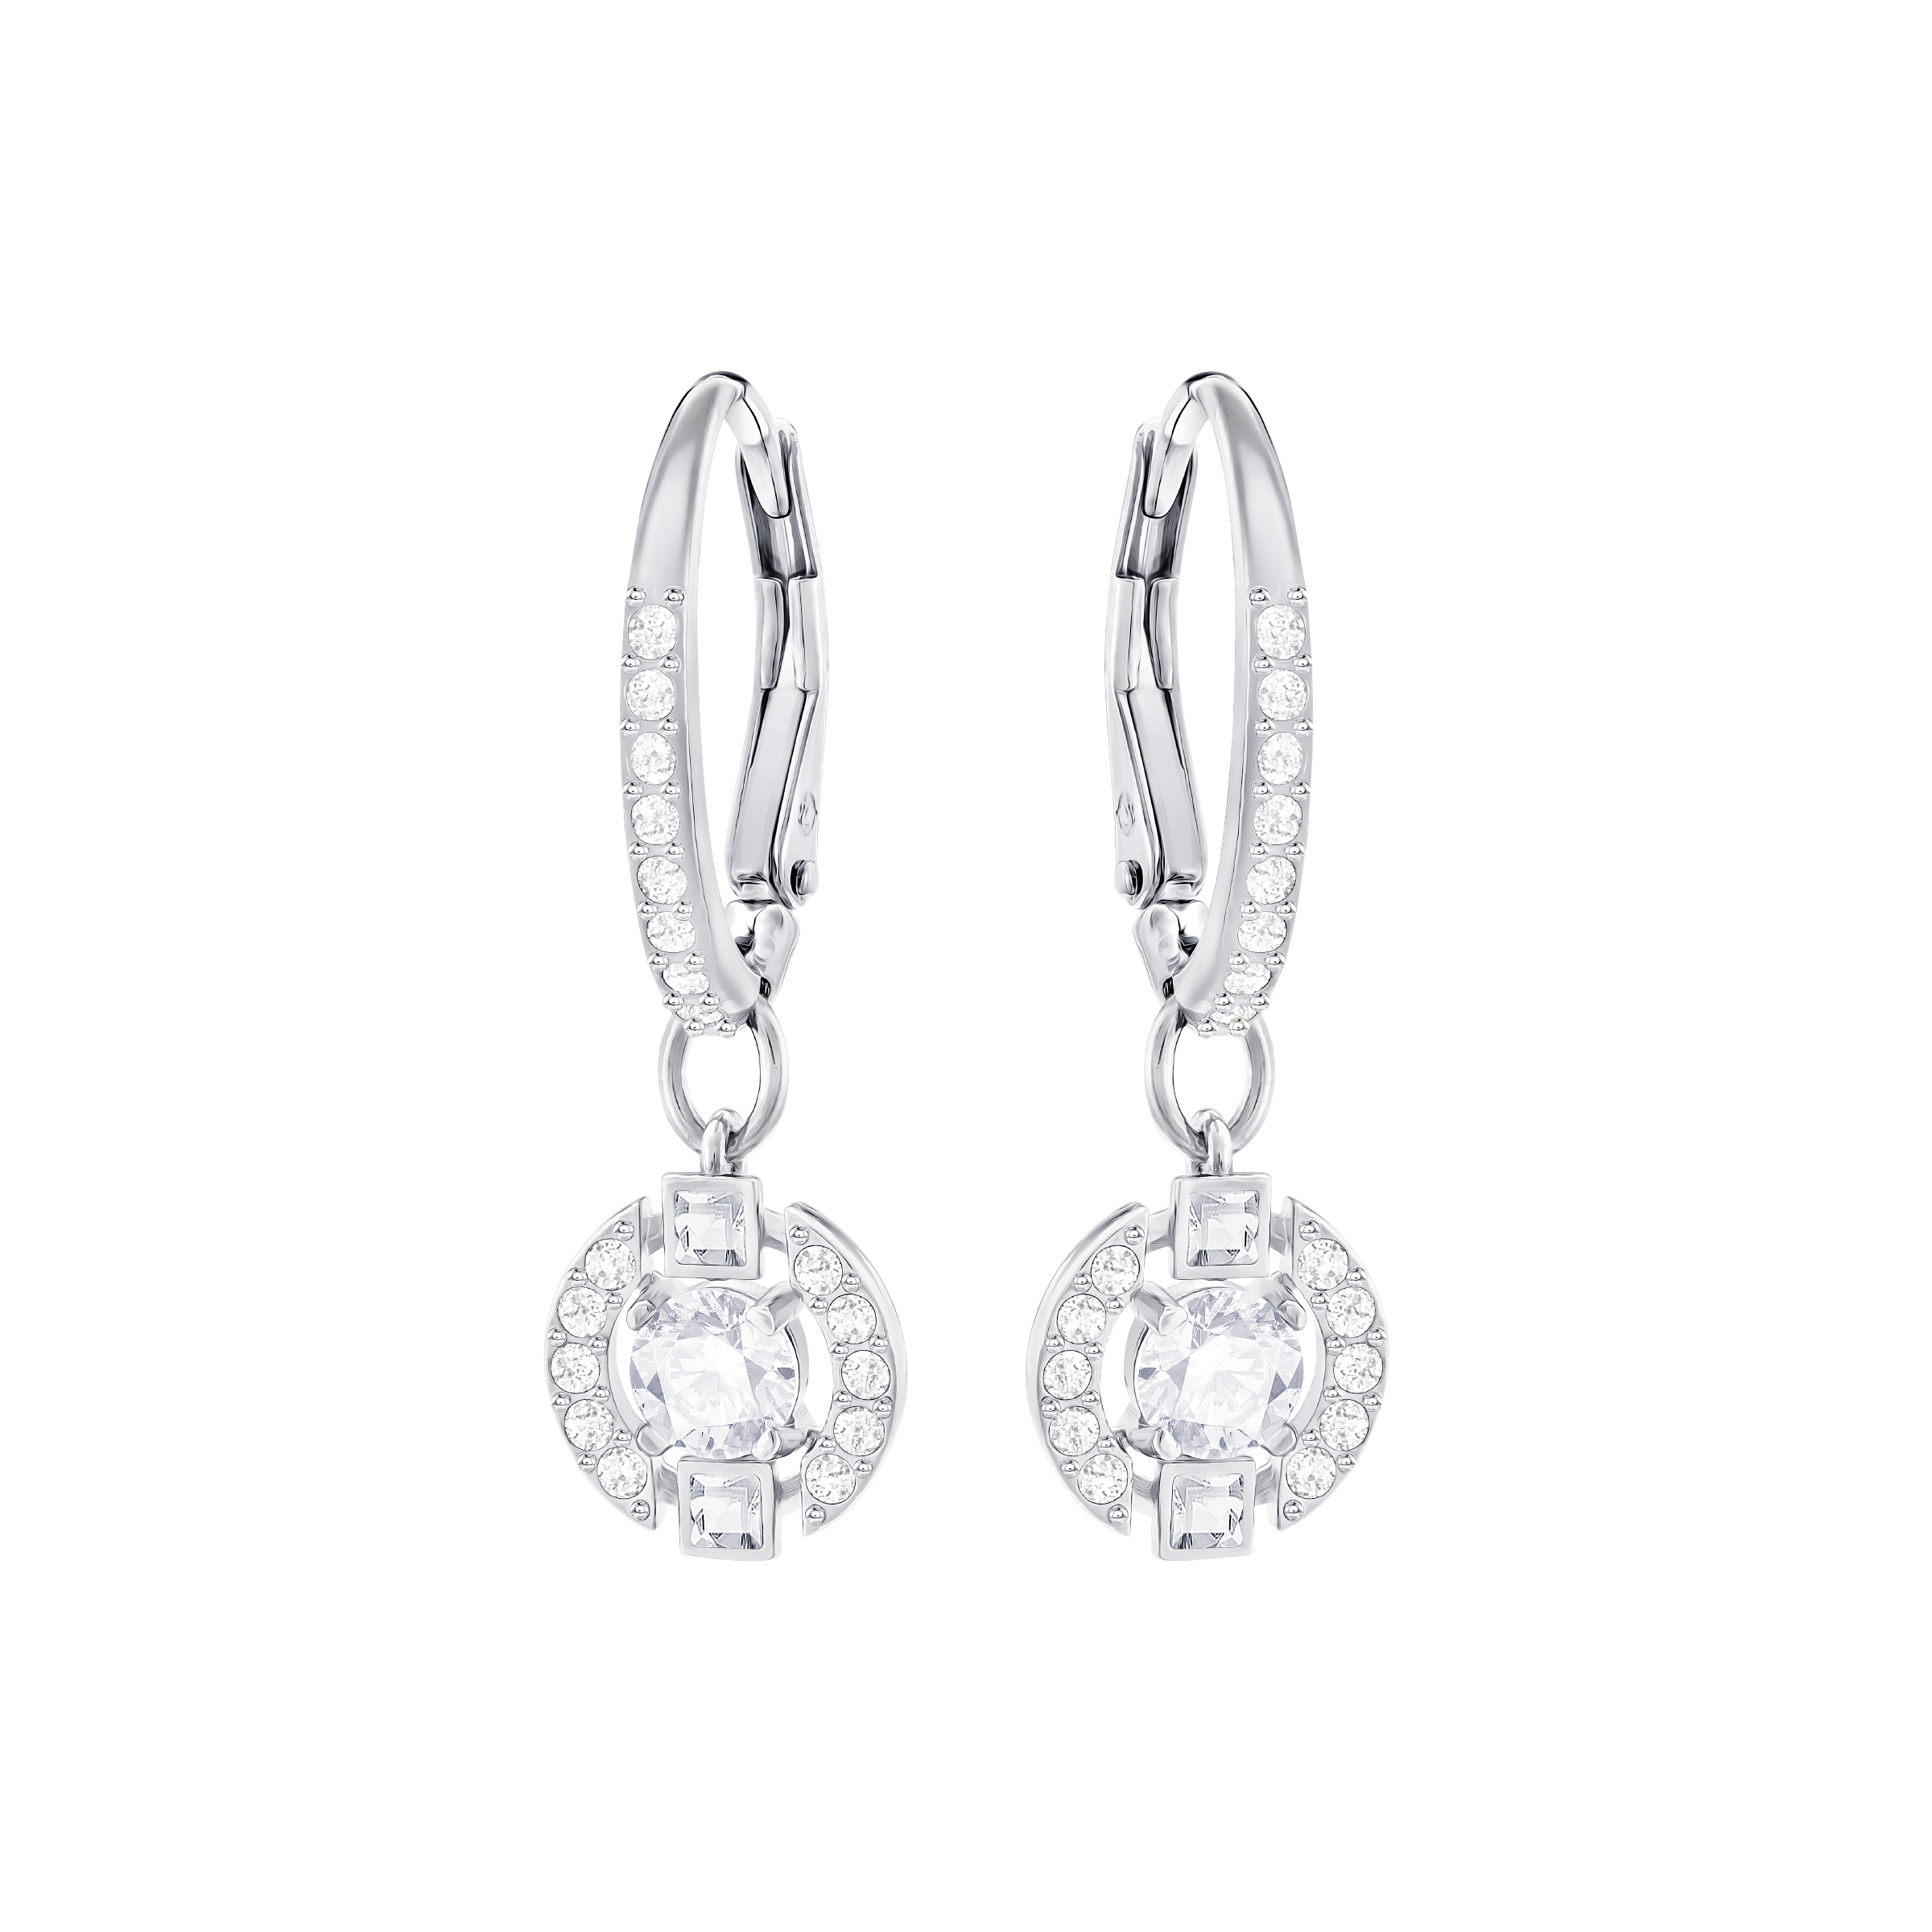 Sparkling Dance Round Pierced Earrings, White, Rhodium Plated